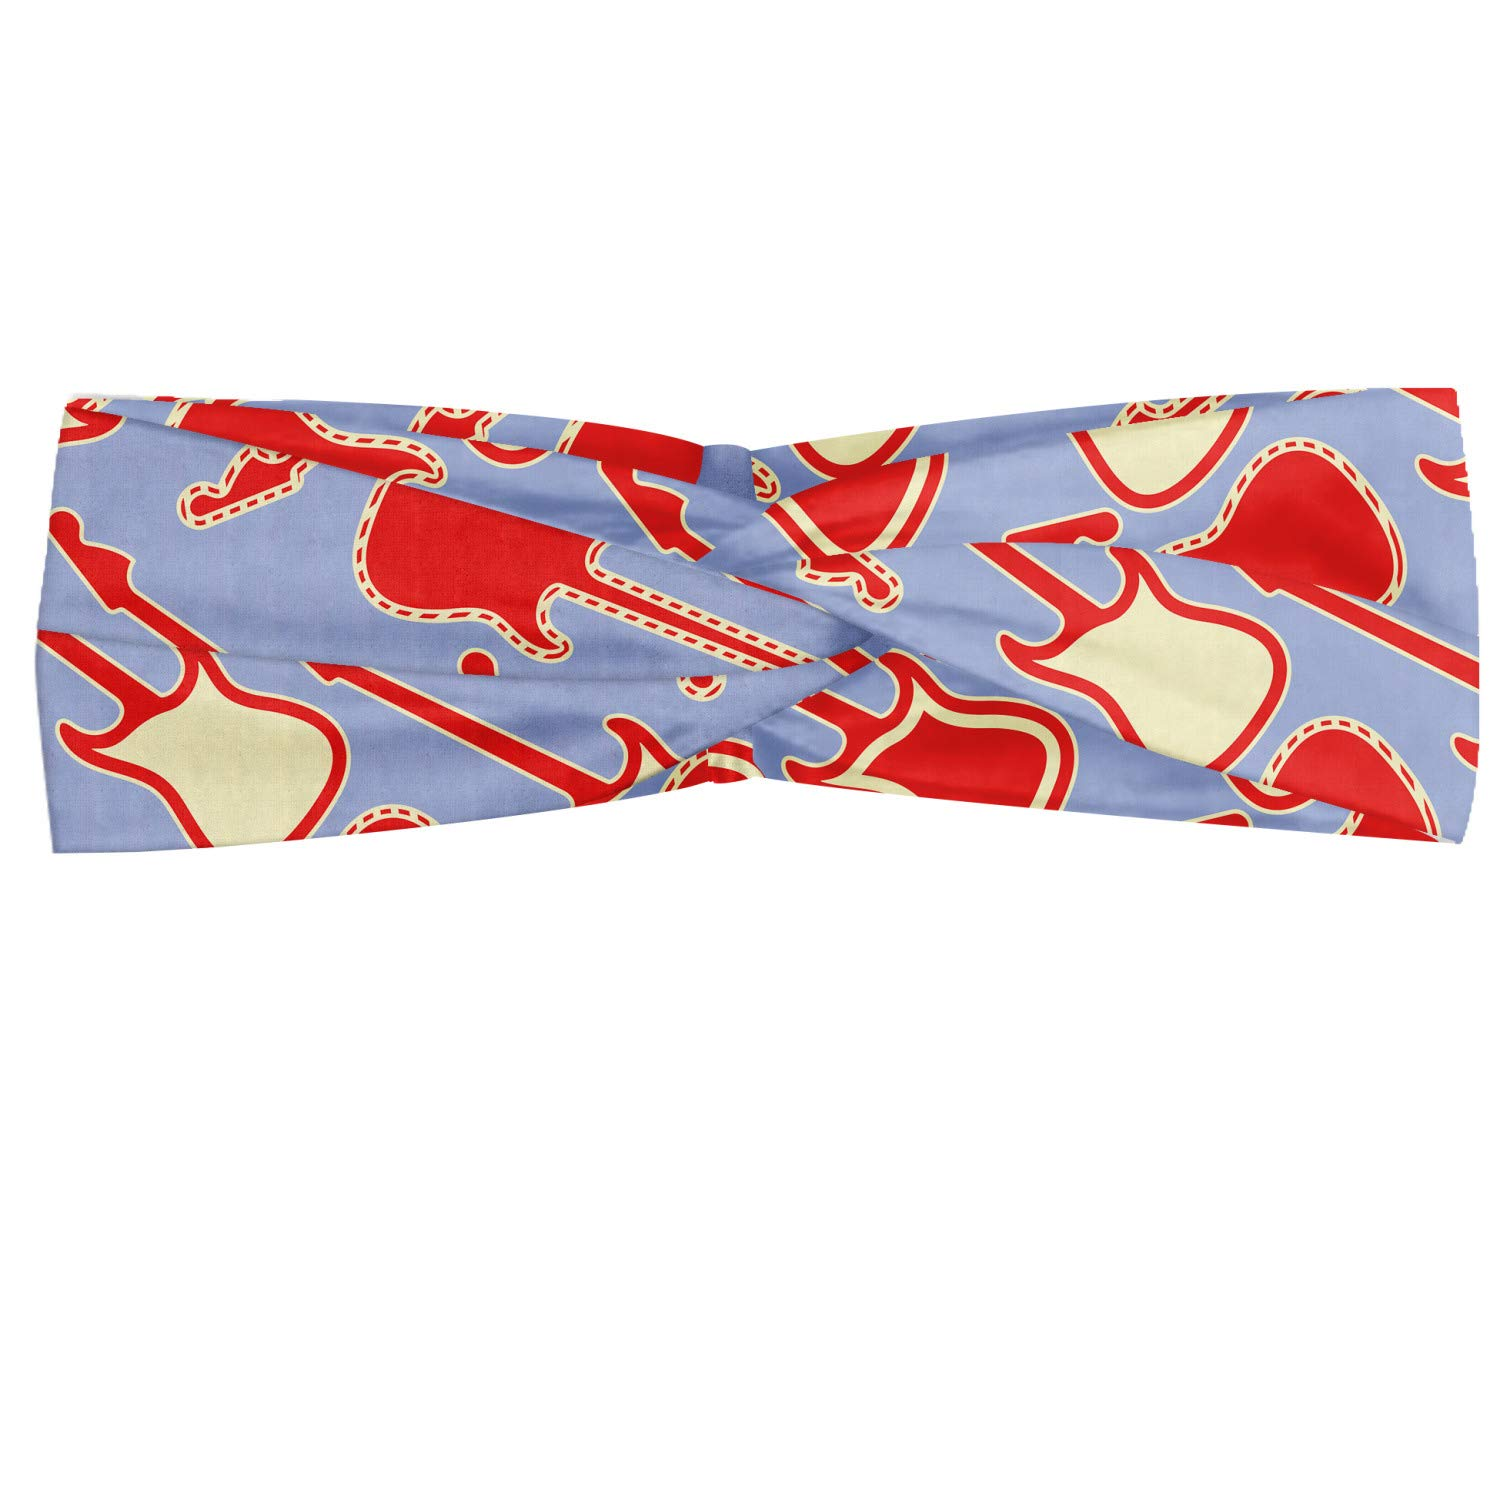 Ambesonne Guitar Headband, Abstract Bicolor Music Equipment Illustration Rock n' Roll Modern, Elastic and Soft Women's Bandana for Sports and Everyday Use, Vermilion Lavender